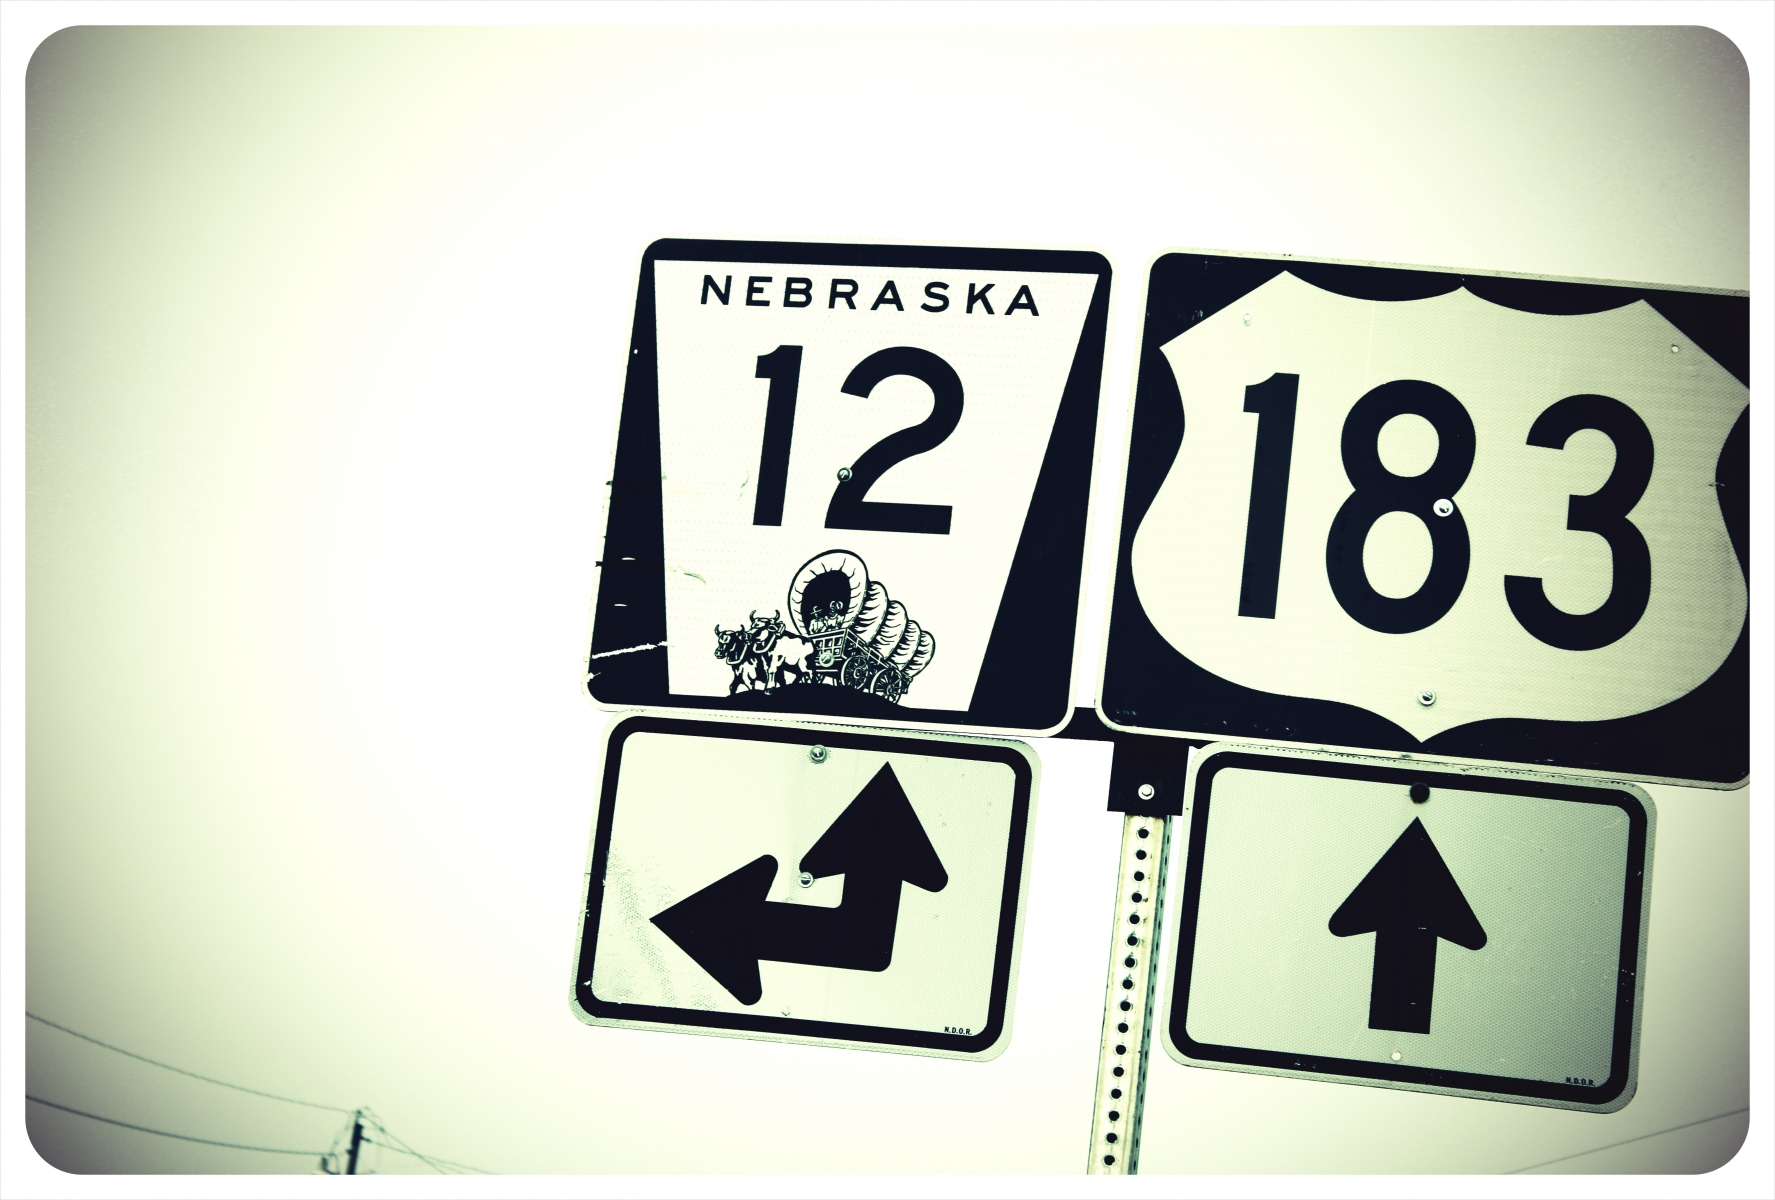 highway-signs-cu